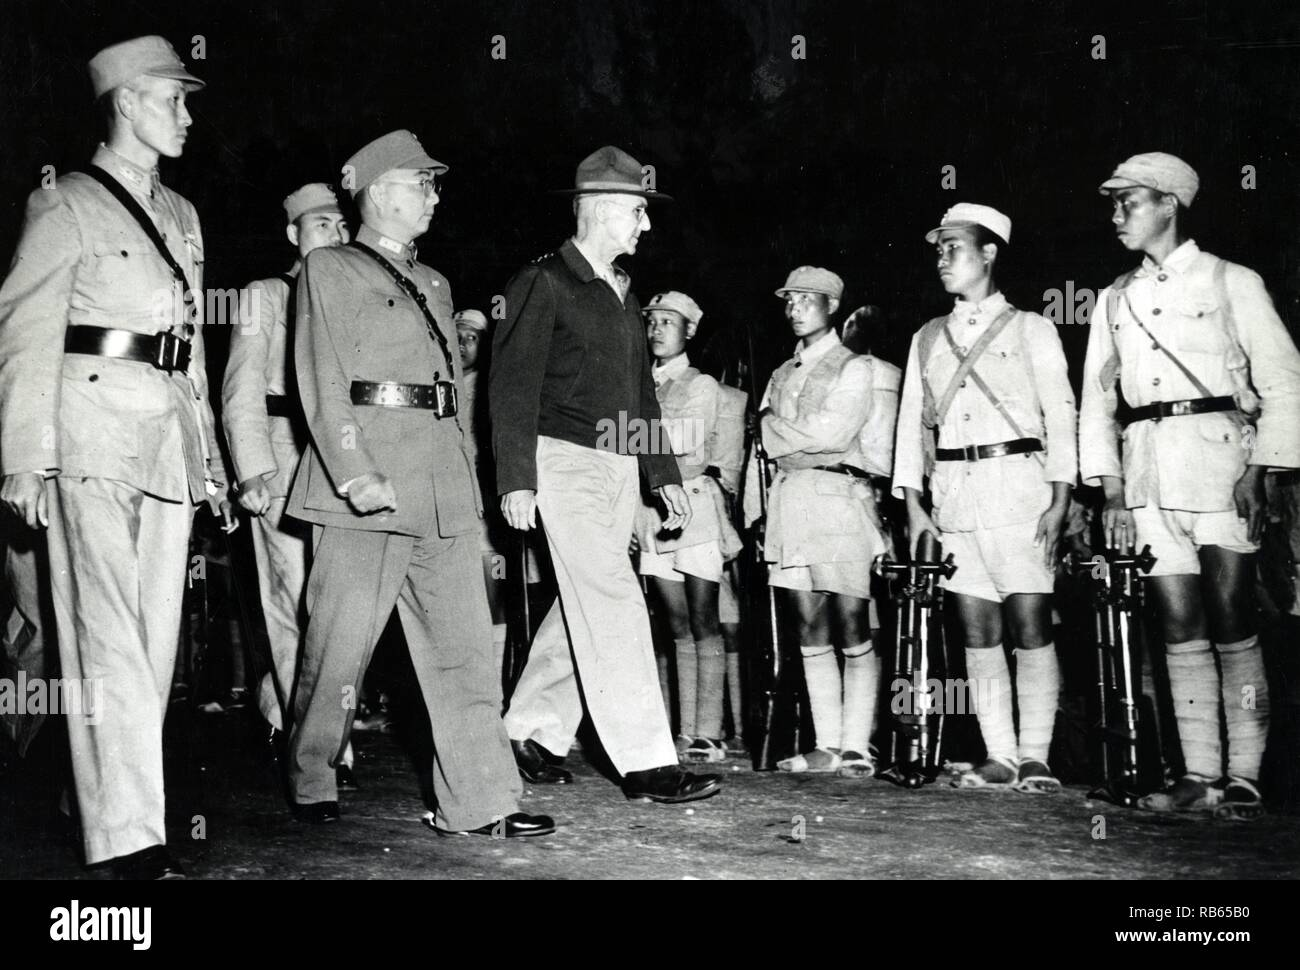 Lt. Gen. Joseph W. Stilwell inspecting Chinese troops in India, accompanied on his right by General Sun Li Zen and Lo. The former is the commanding general and the latter deputy chief of staff of the Chinese expeditionary forces. 1942. - Stock Image